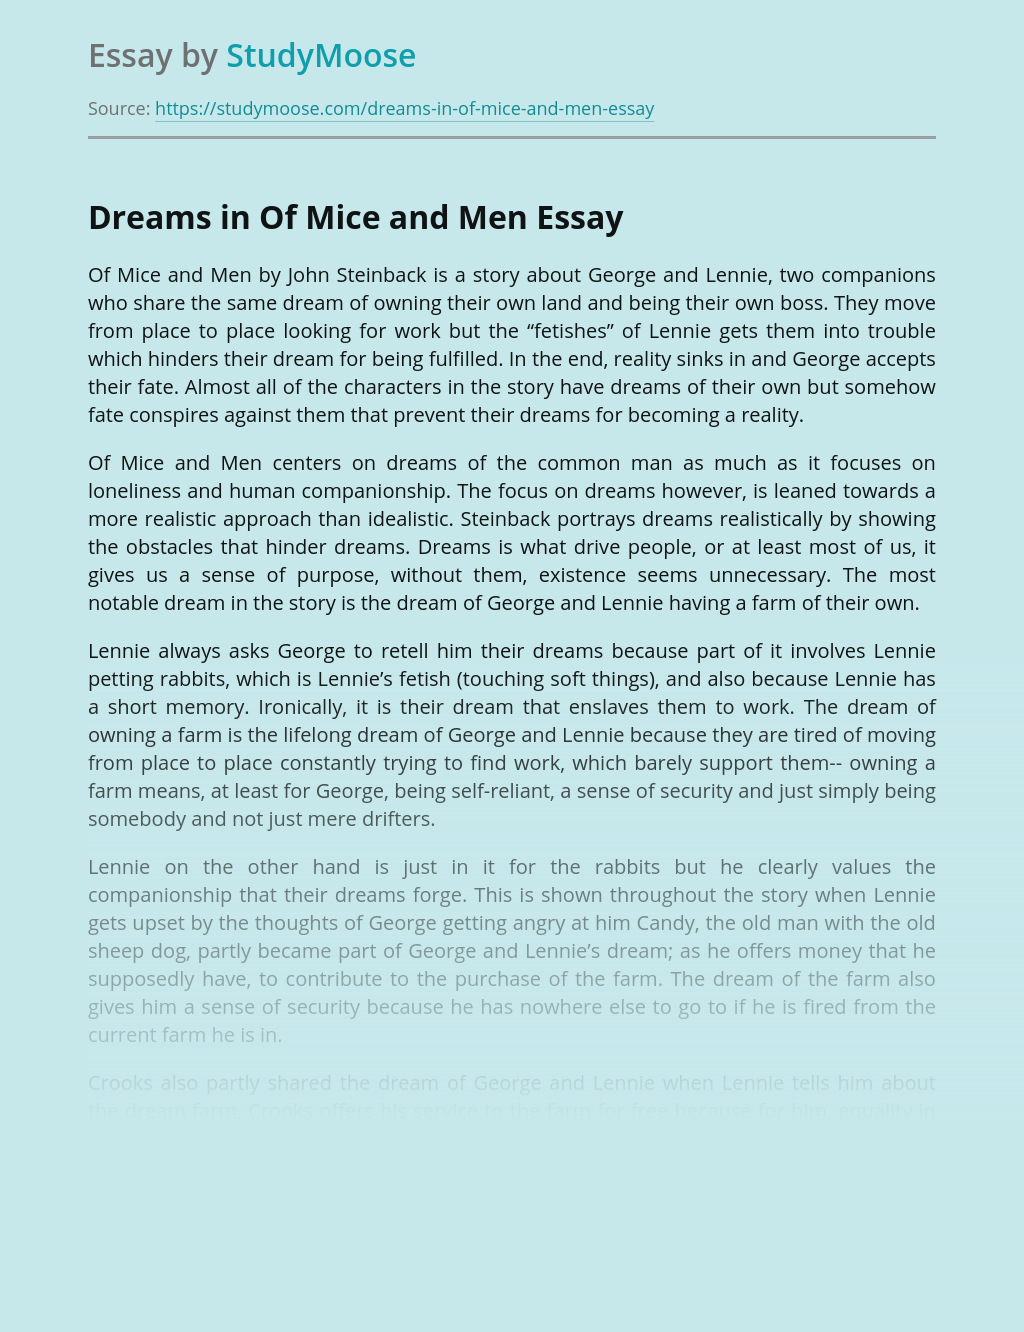 Dreams in Of Mice and Men